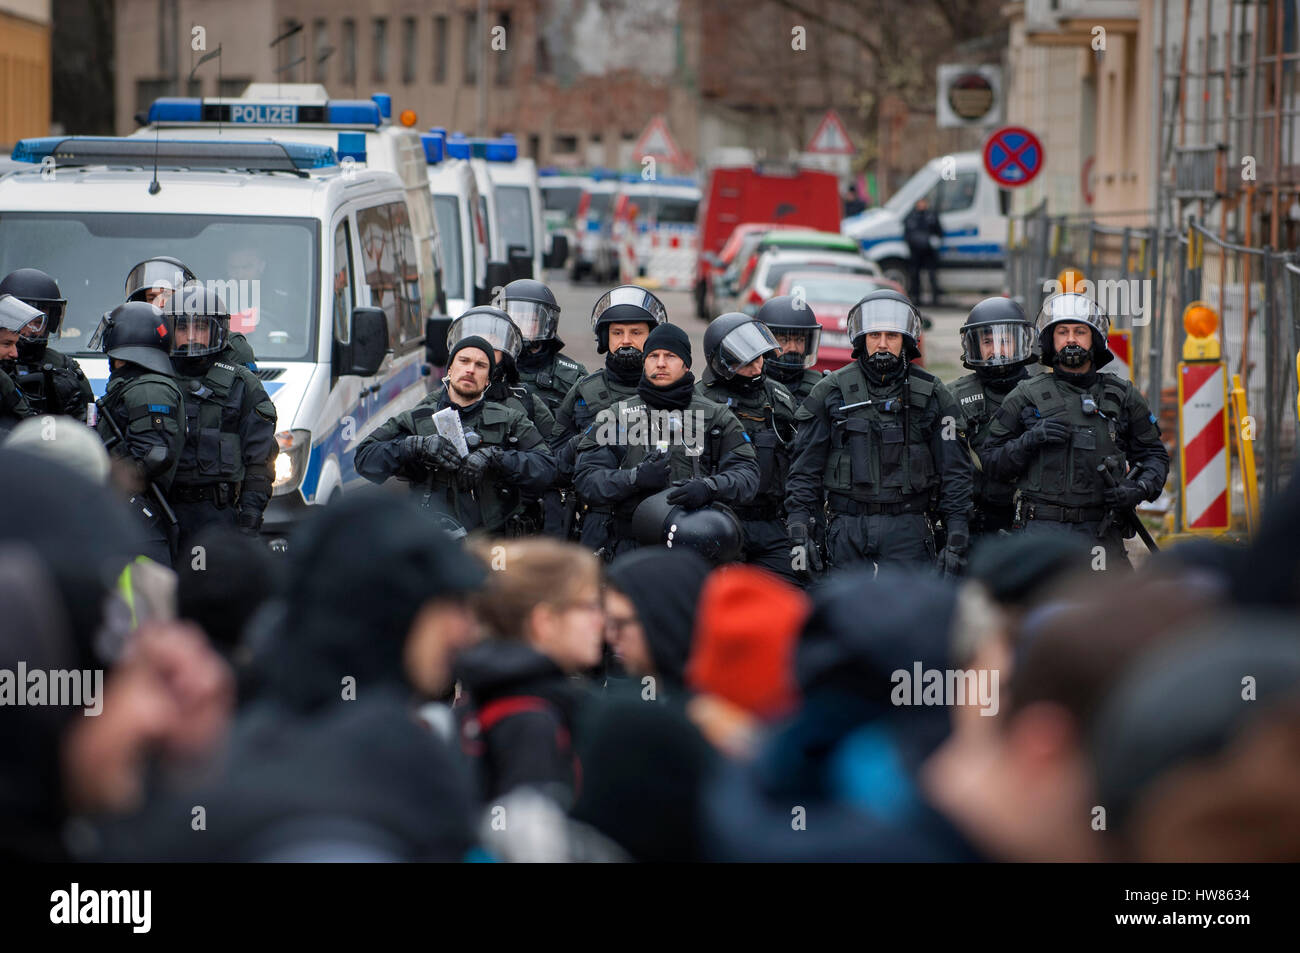 Leipzig, Germany. 18th March, 2017. On the 18th of March, 2016 the EU signed  its deal with Turkey in an attempt - Stock Image